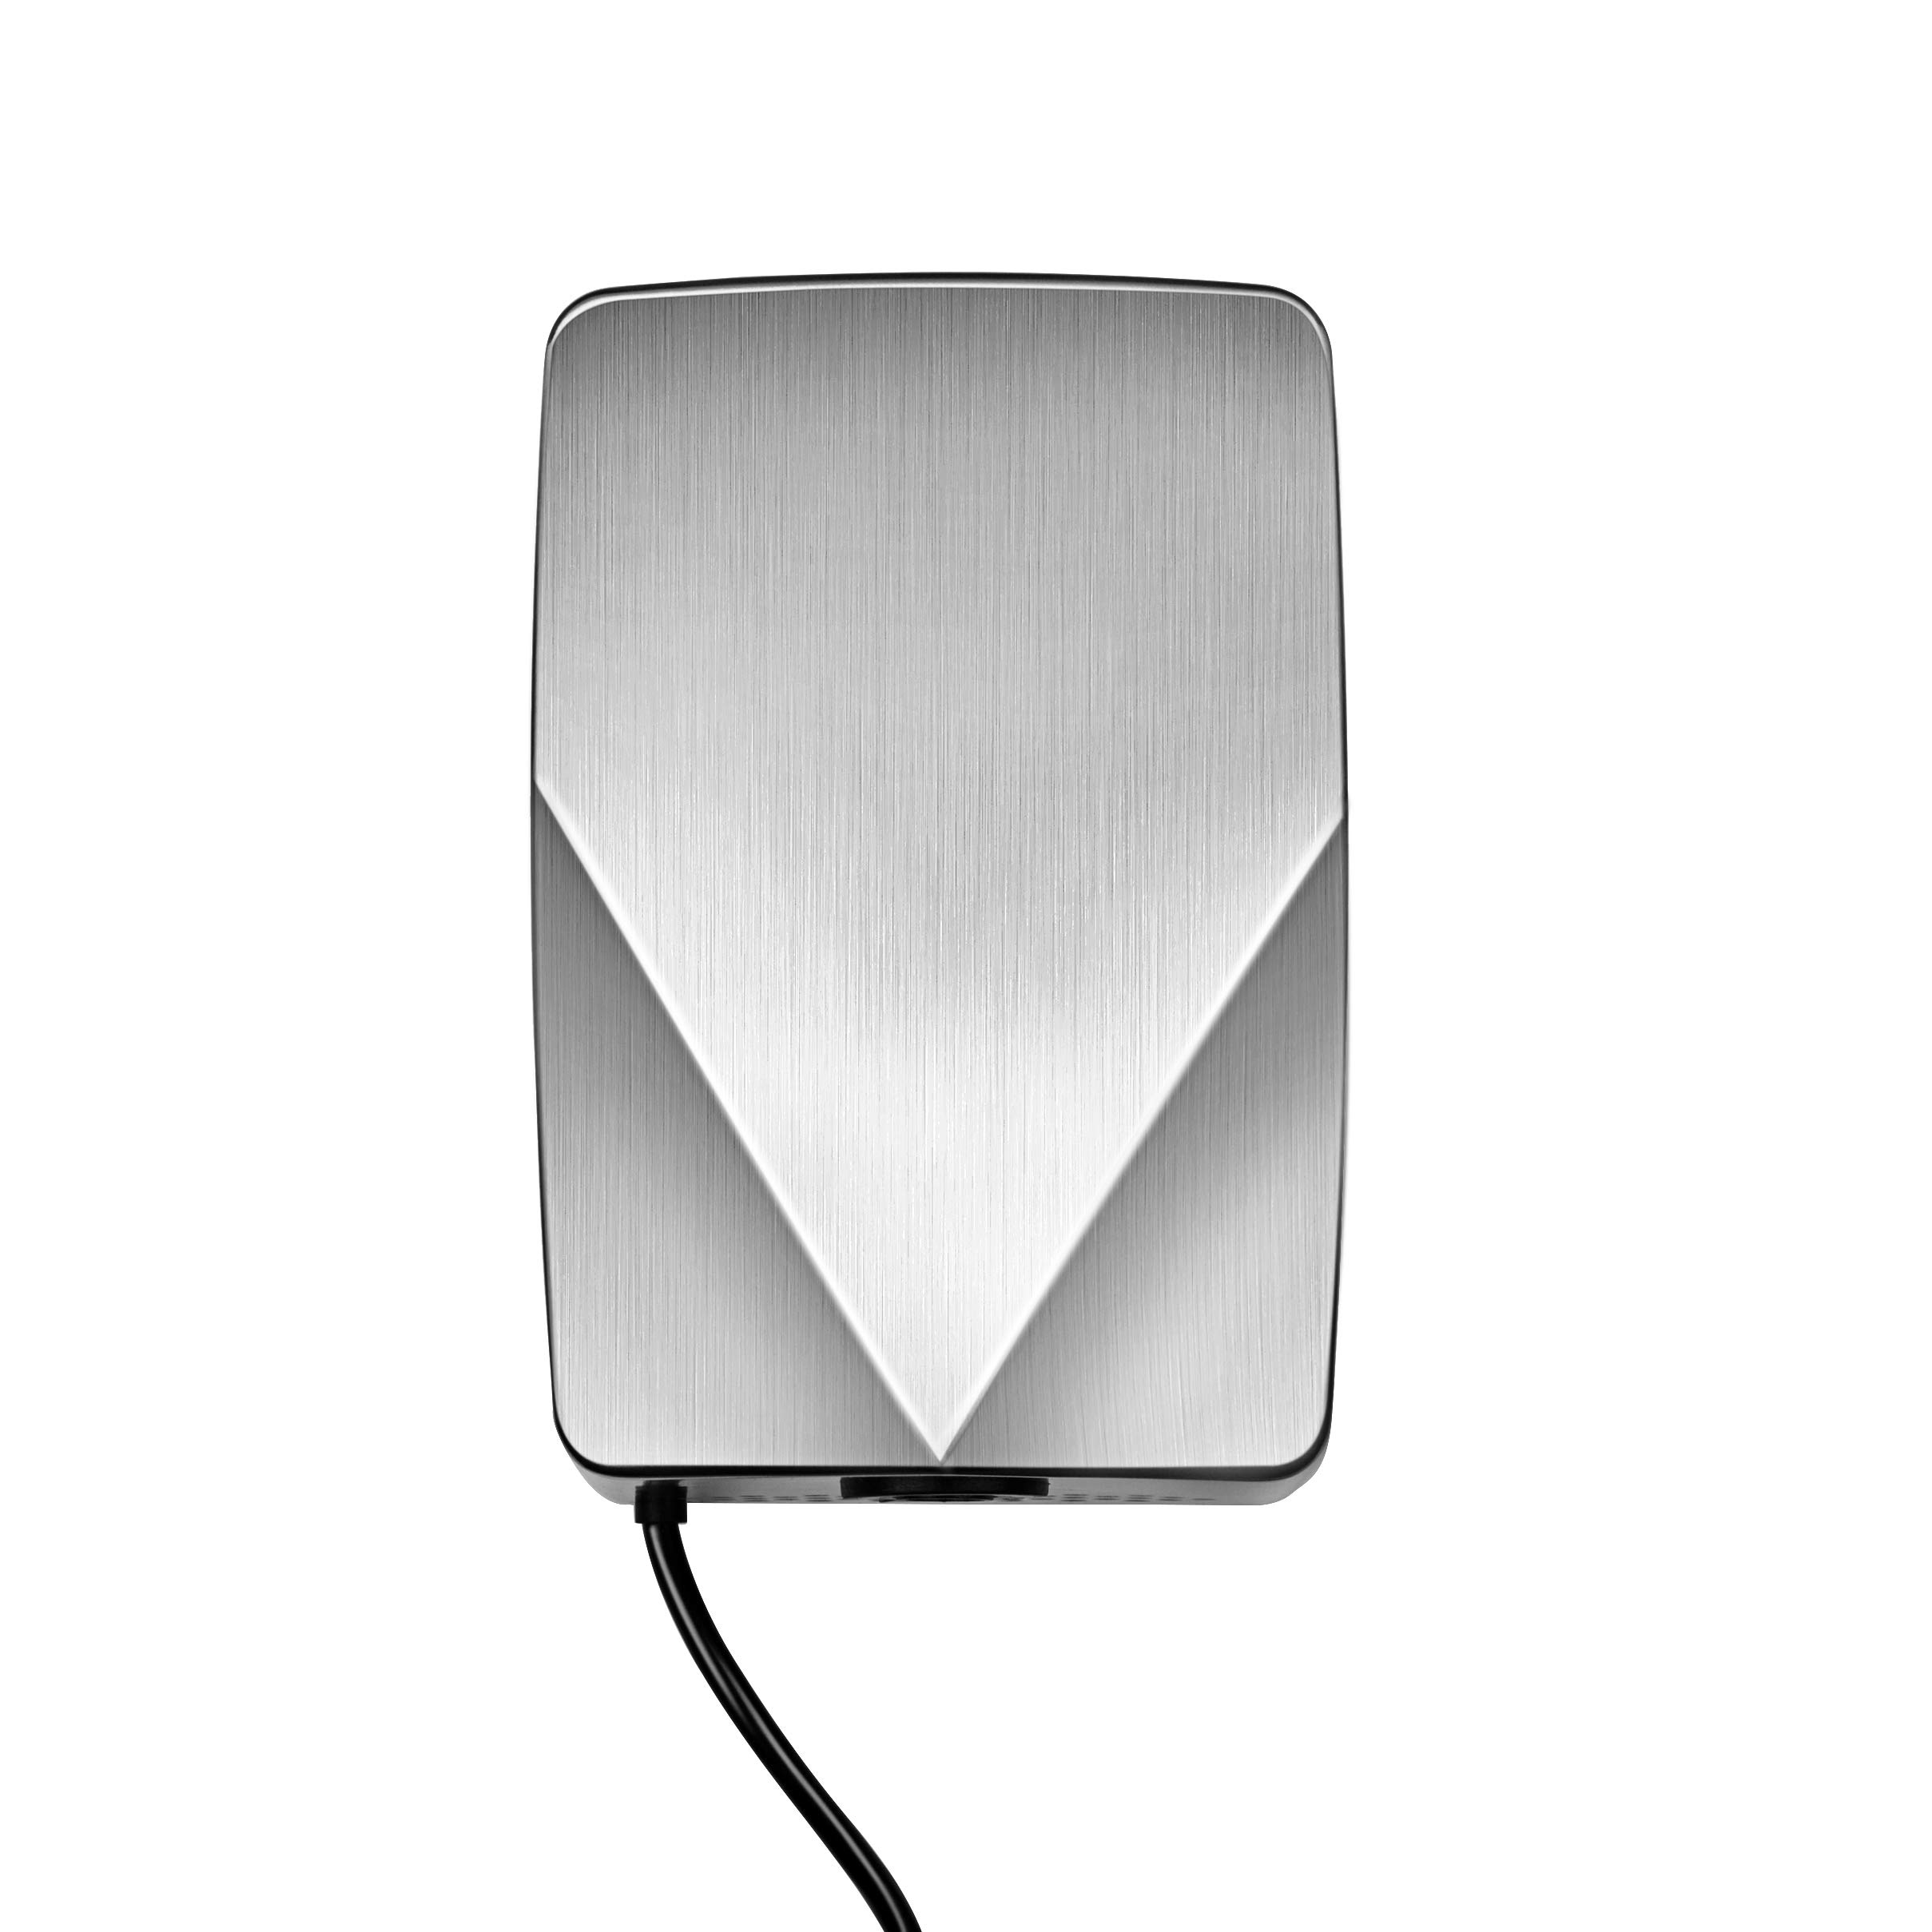 Kingwe 1028 Automatic Intelligent Induction Hand Dryer, High Speed Hot air Hand Blower / 304 Stainless Steel / /Easy Installation/Energy-efficient/for Home,Hotel Commercial Bathroom by Kelin